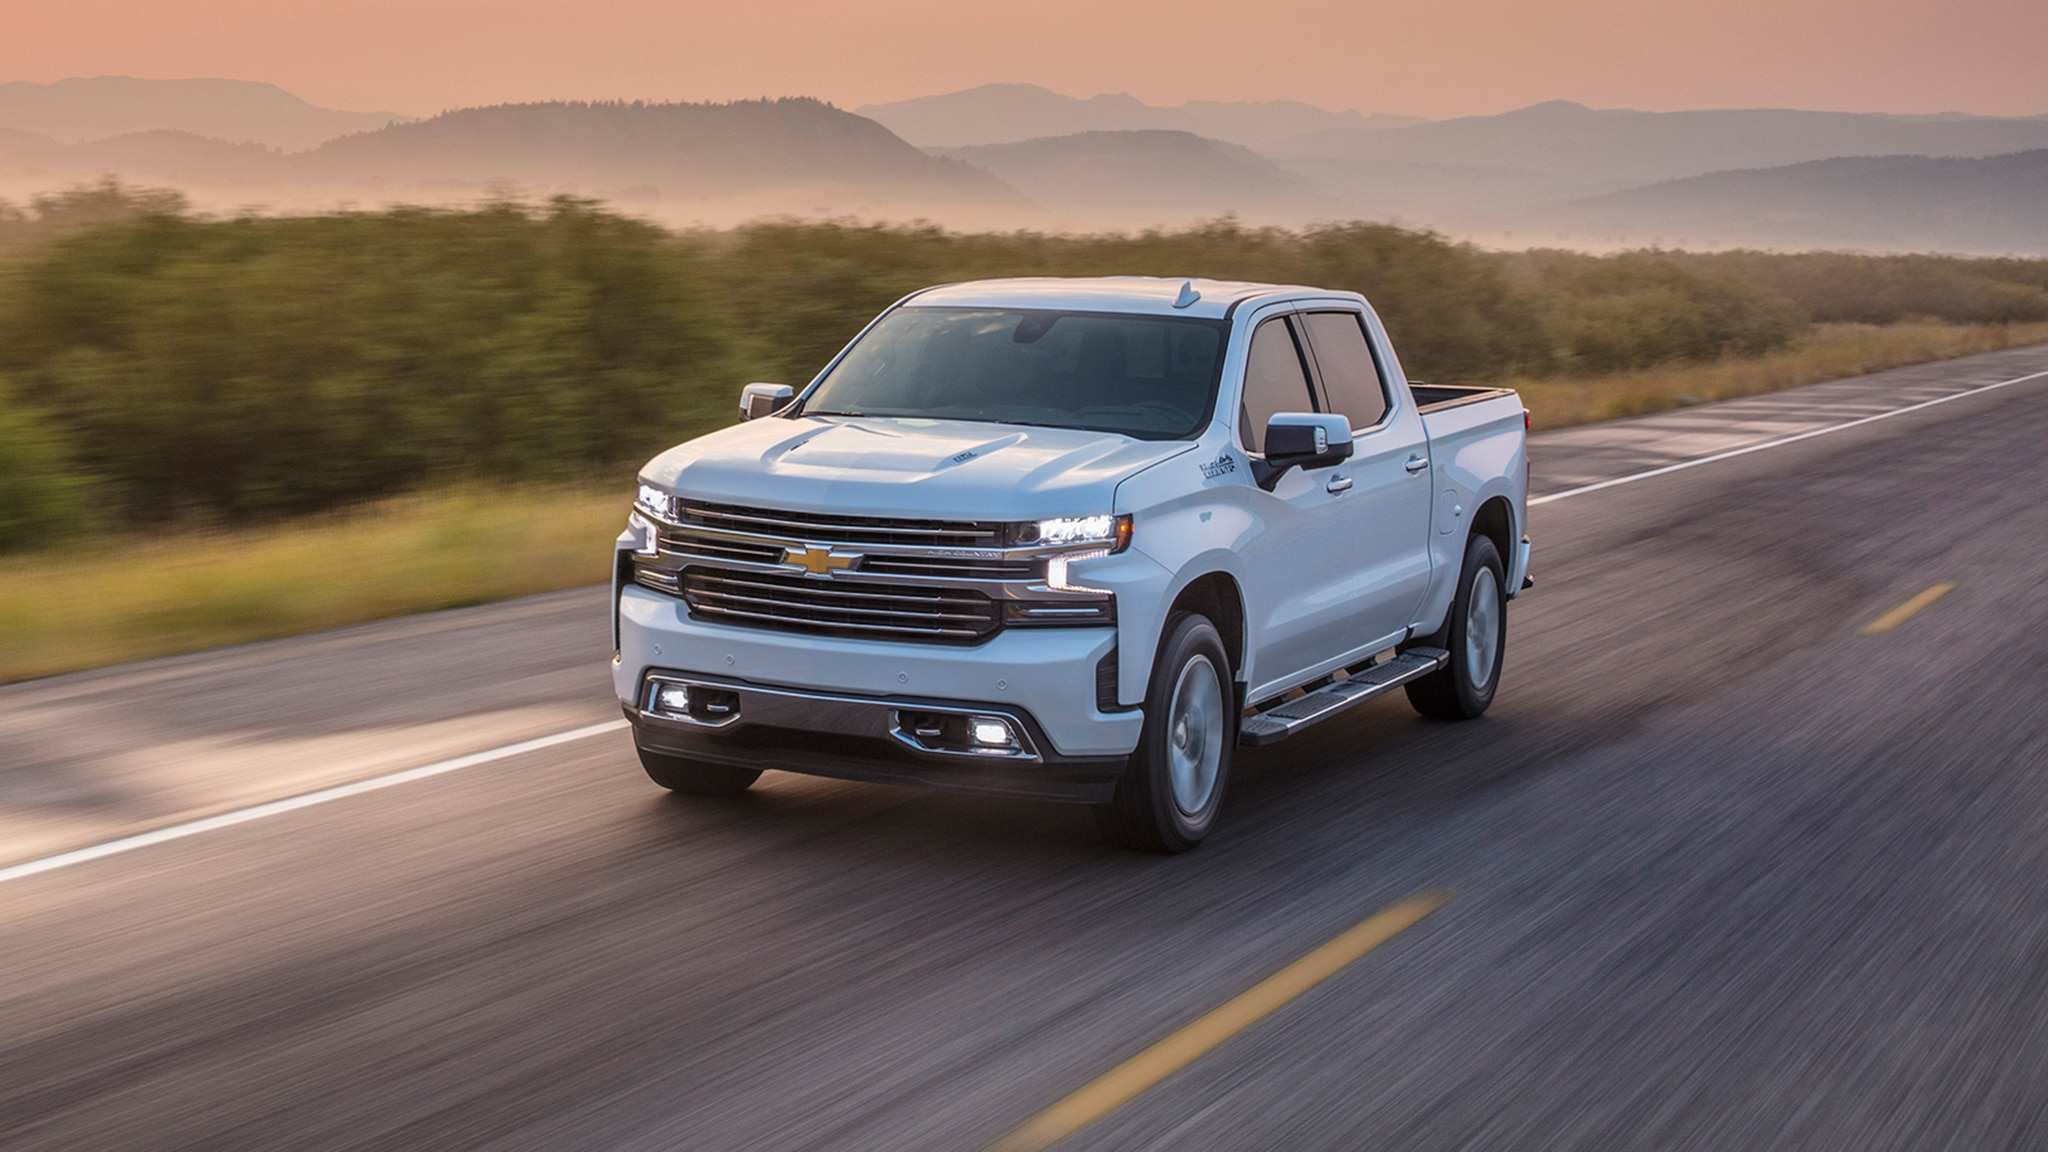 99 Concept of 2019 Chevrolet High Country Wallpaper with 2019 Chevrolet High Country